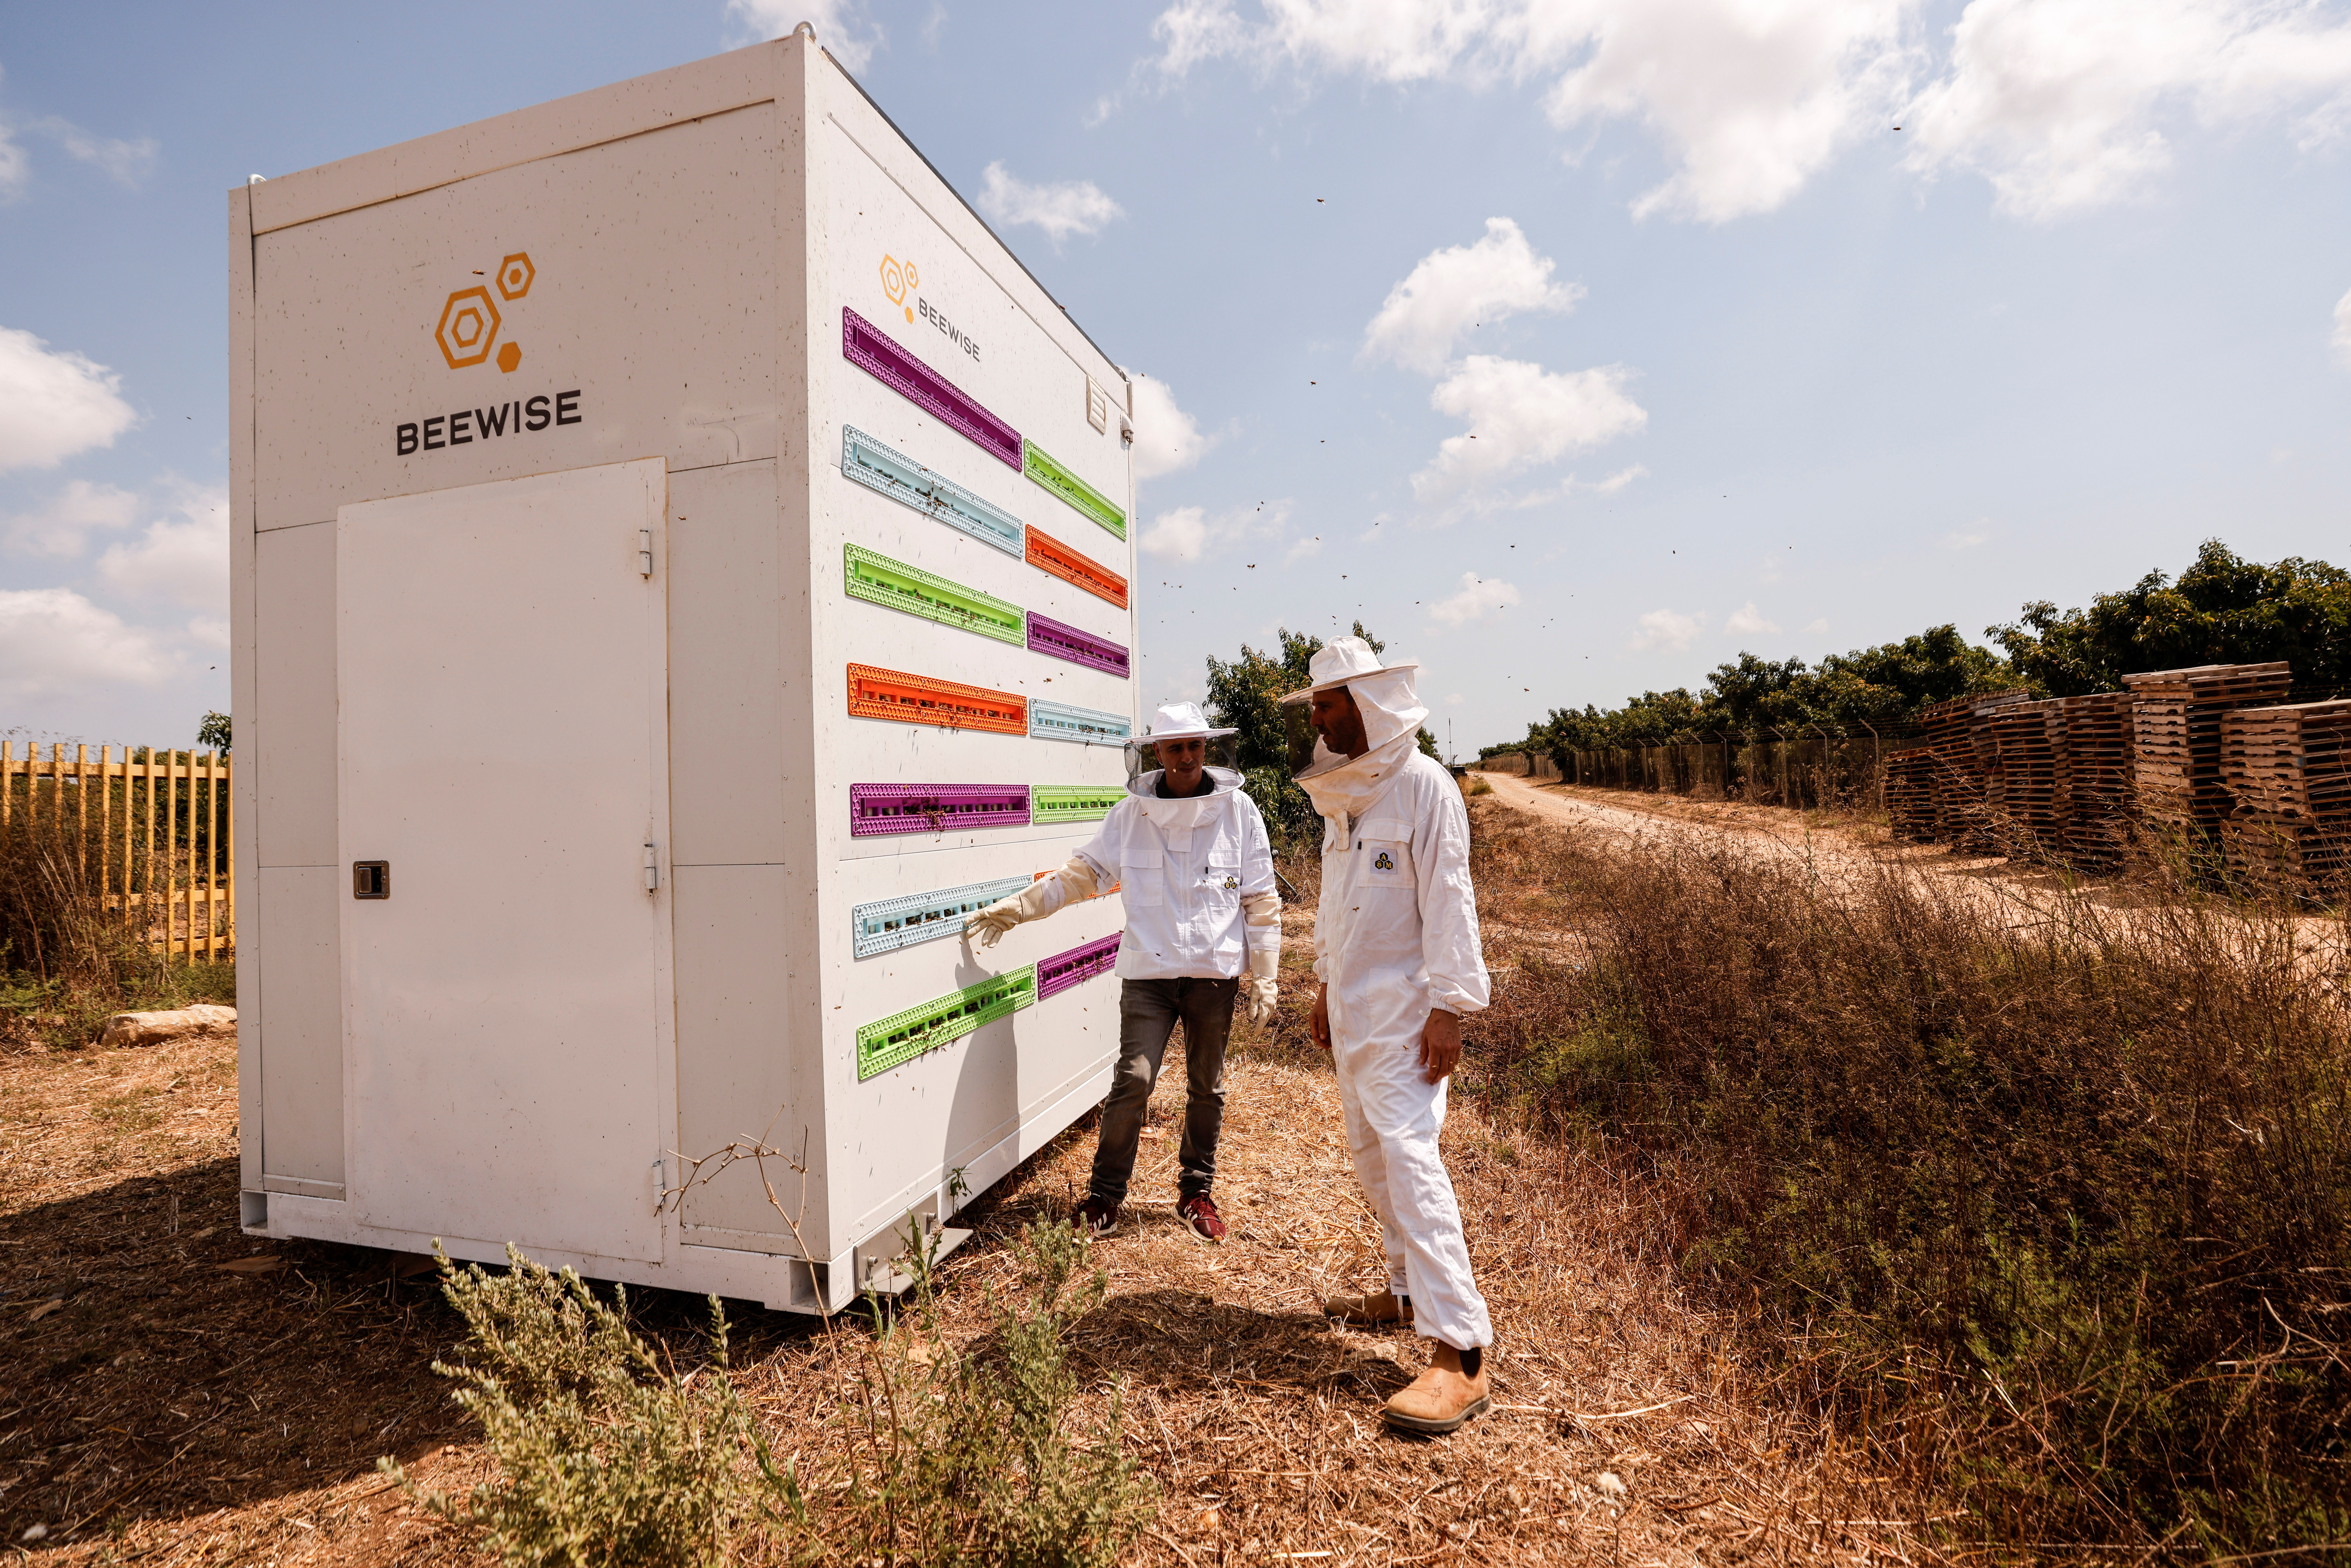 CEO Saar Safra and Hallel Schreier, head of research, stand next to a robotic beehive developed by the Israeli startup company Beewise in Beit Haemek, Israel